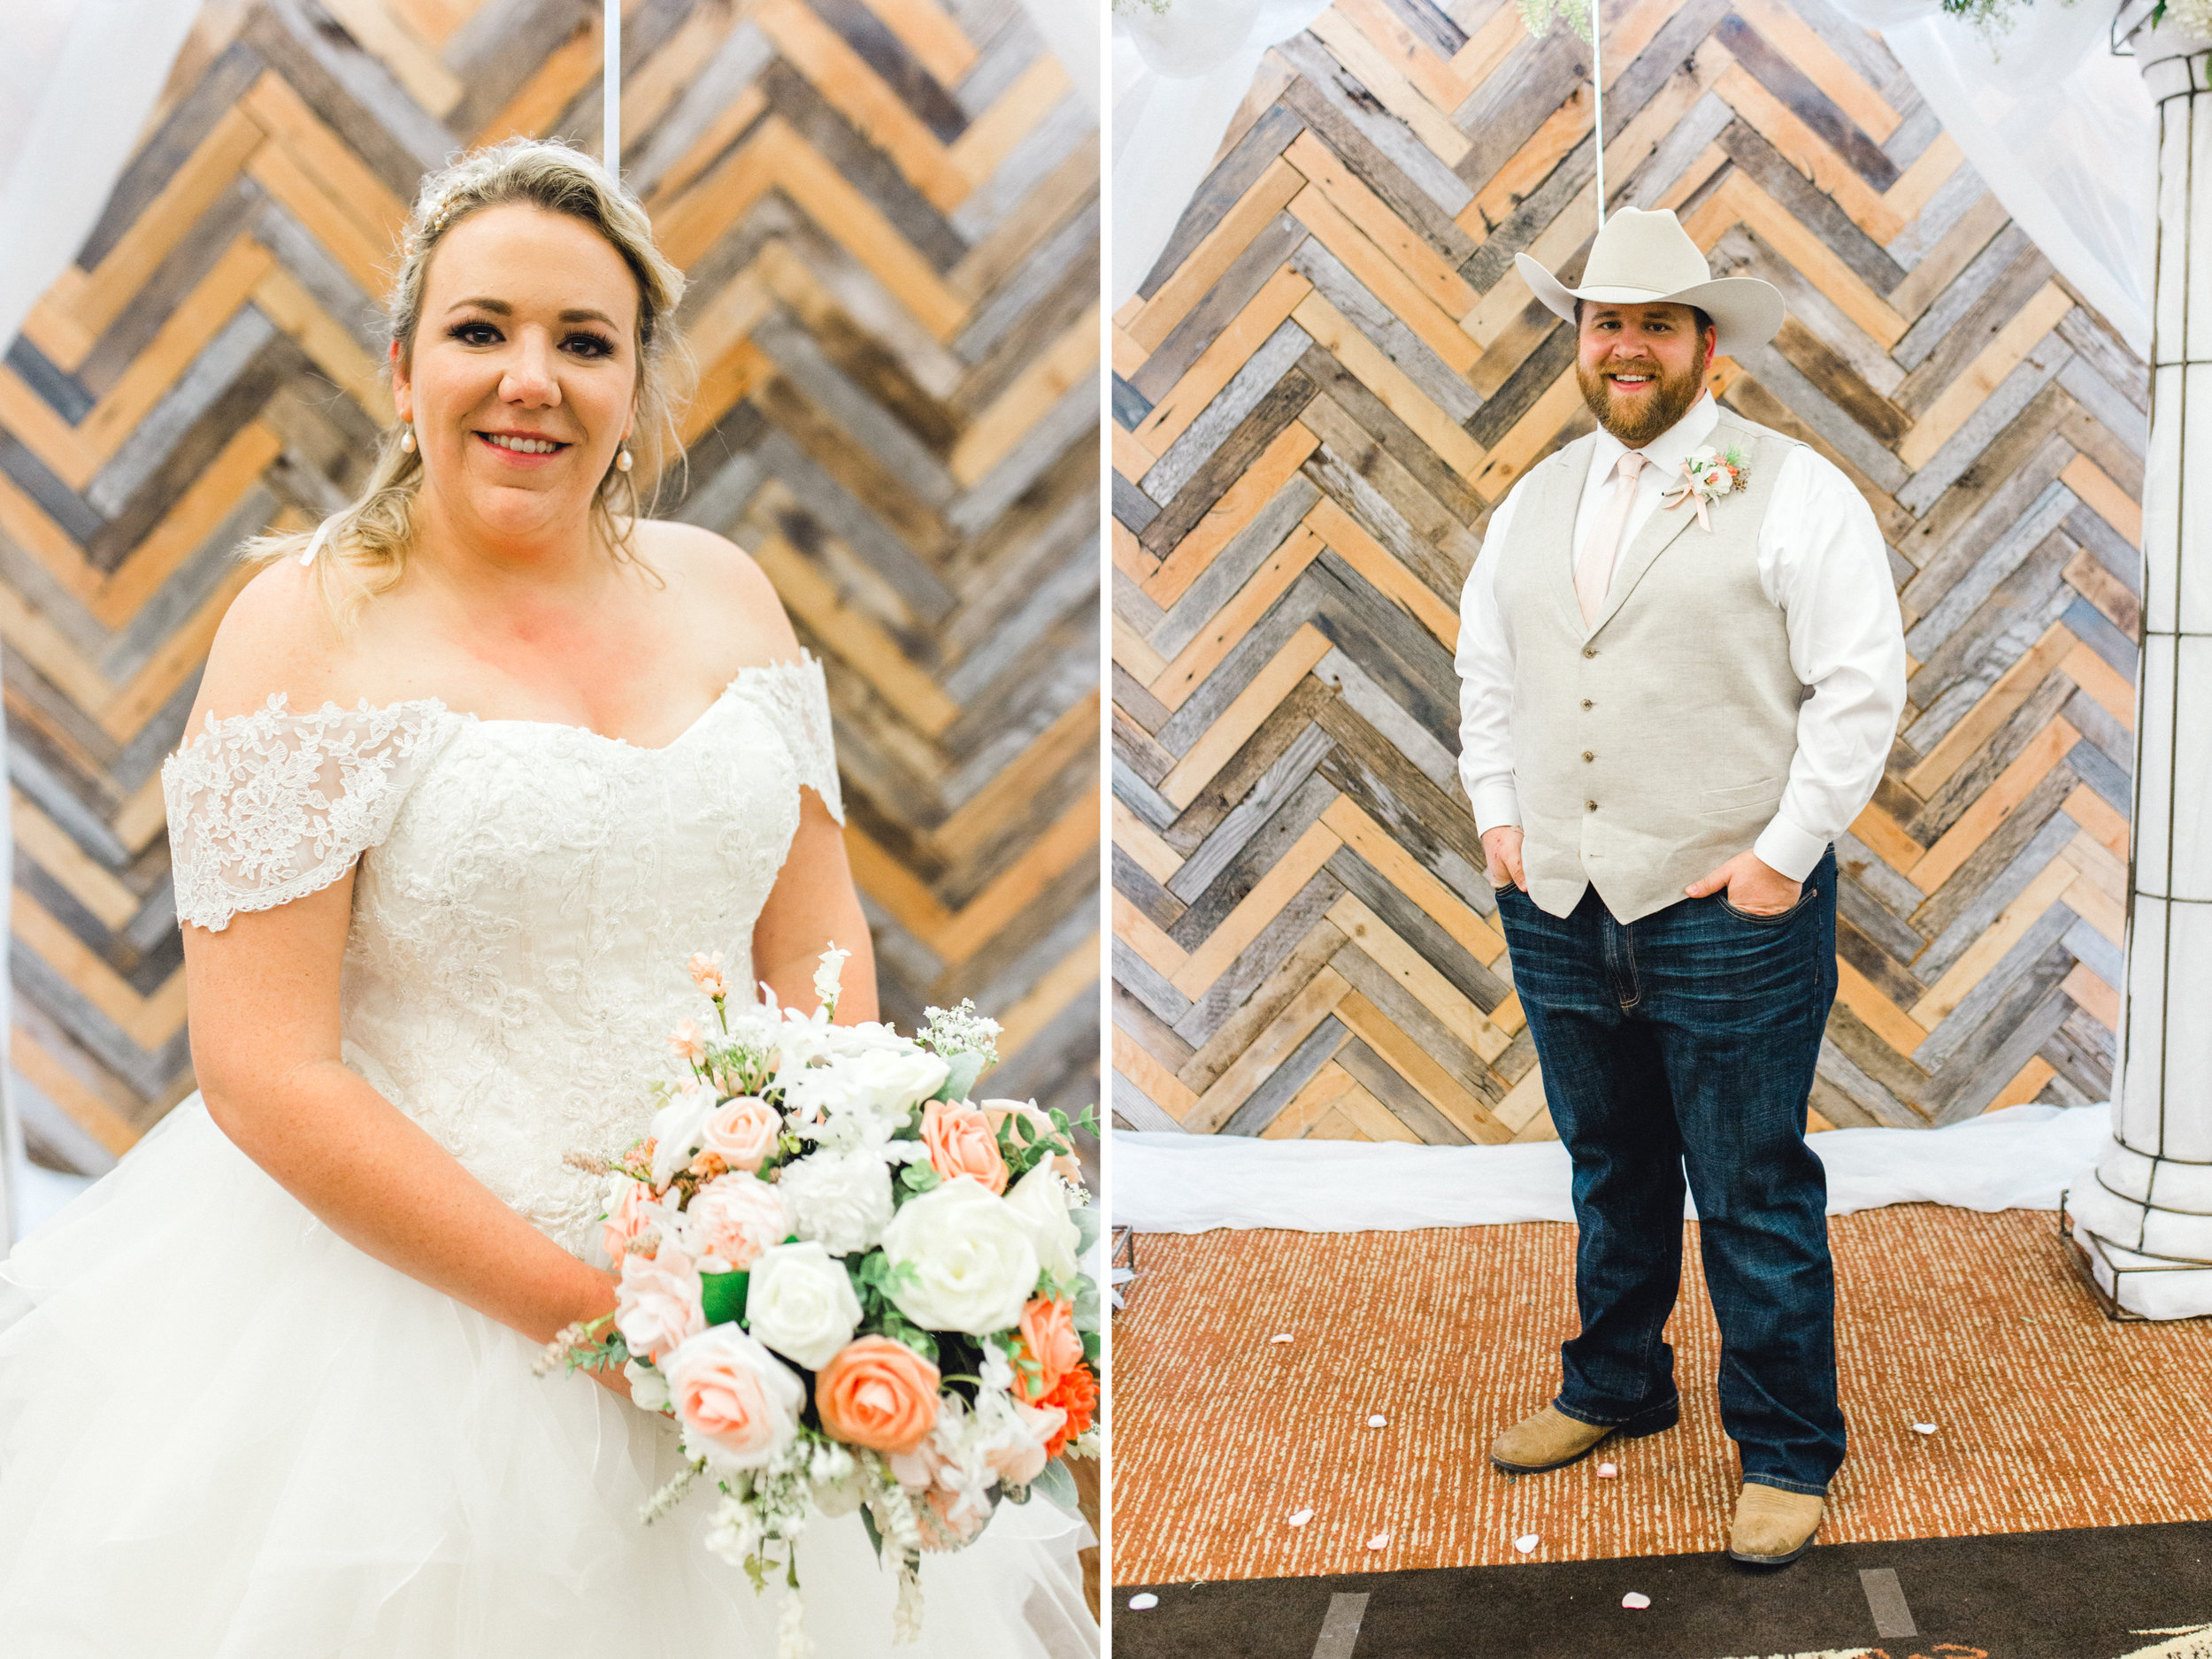 idahofallsweddingphotographer-hotelwedding6.jpg